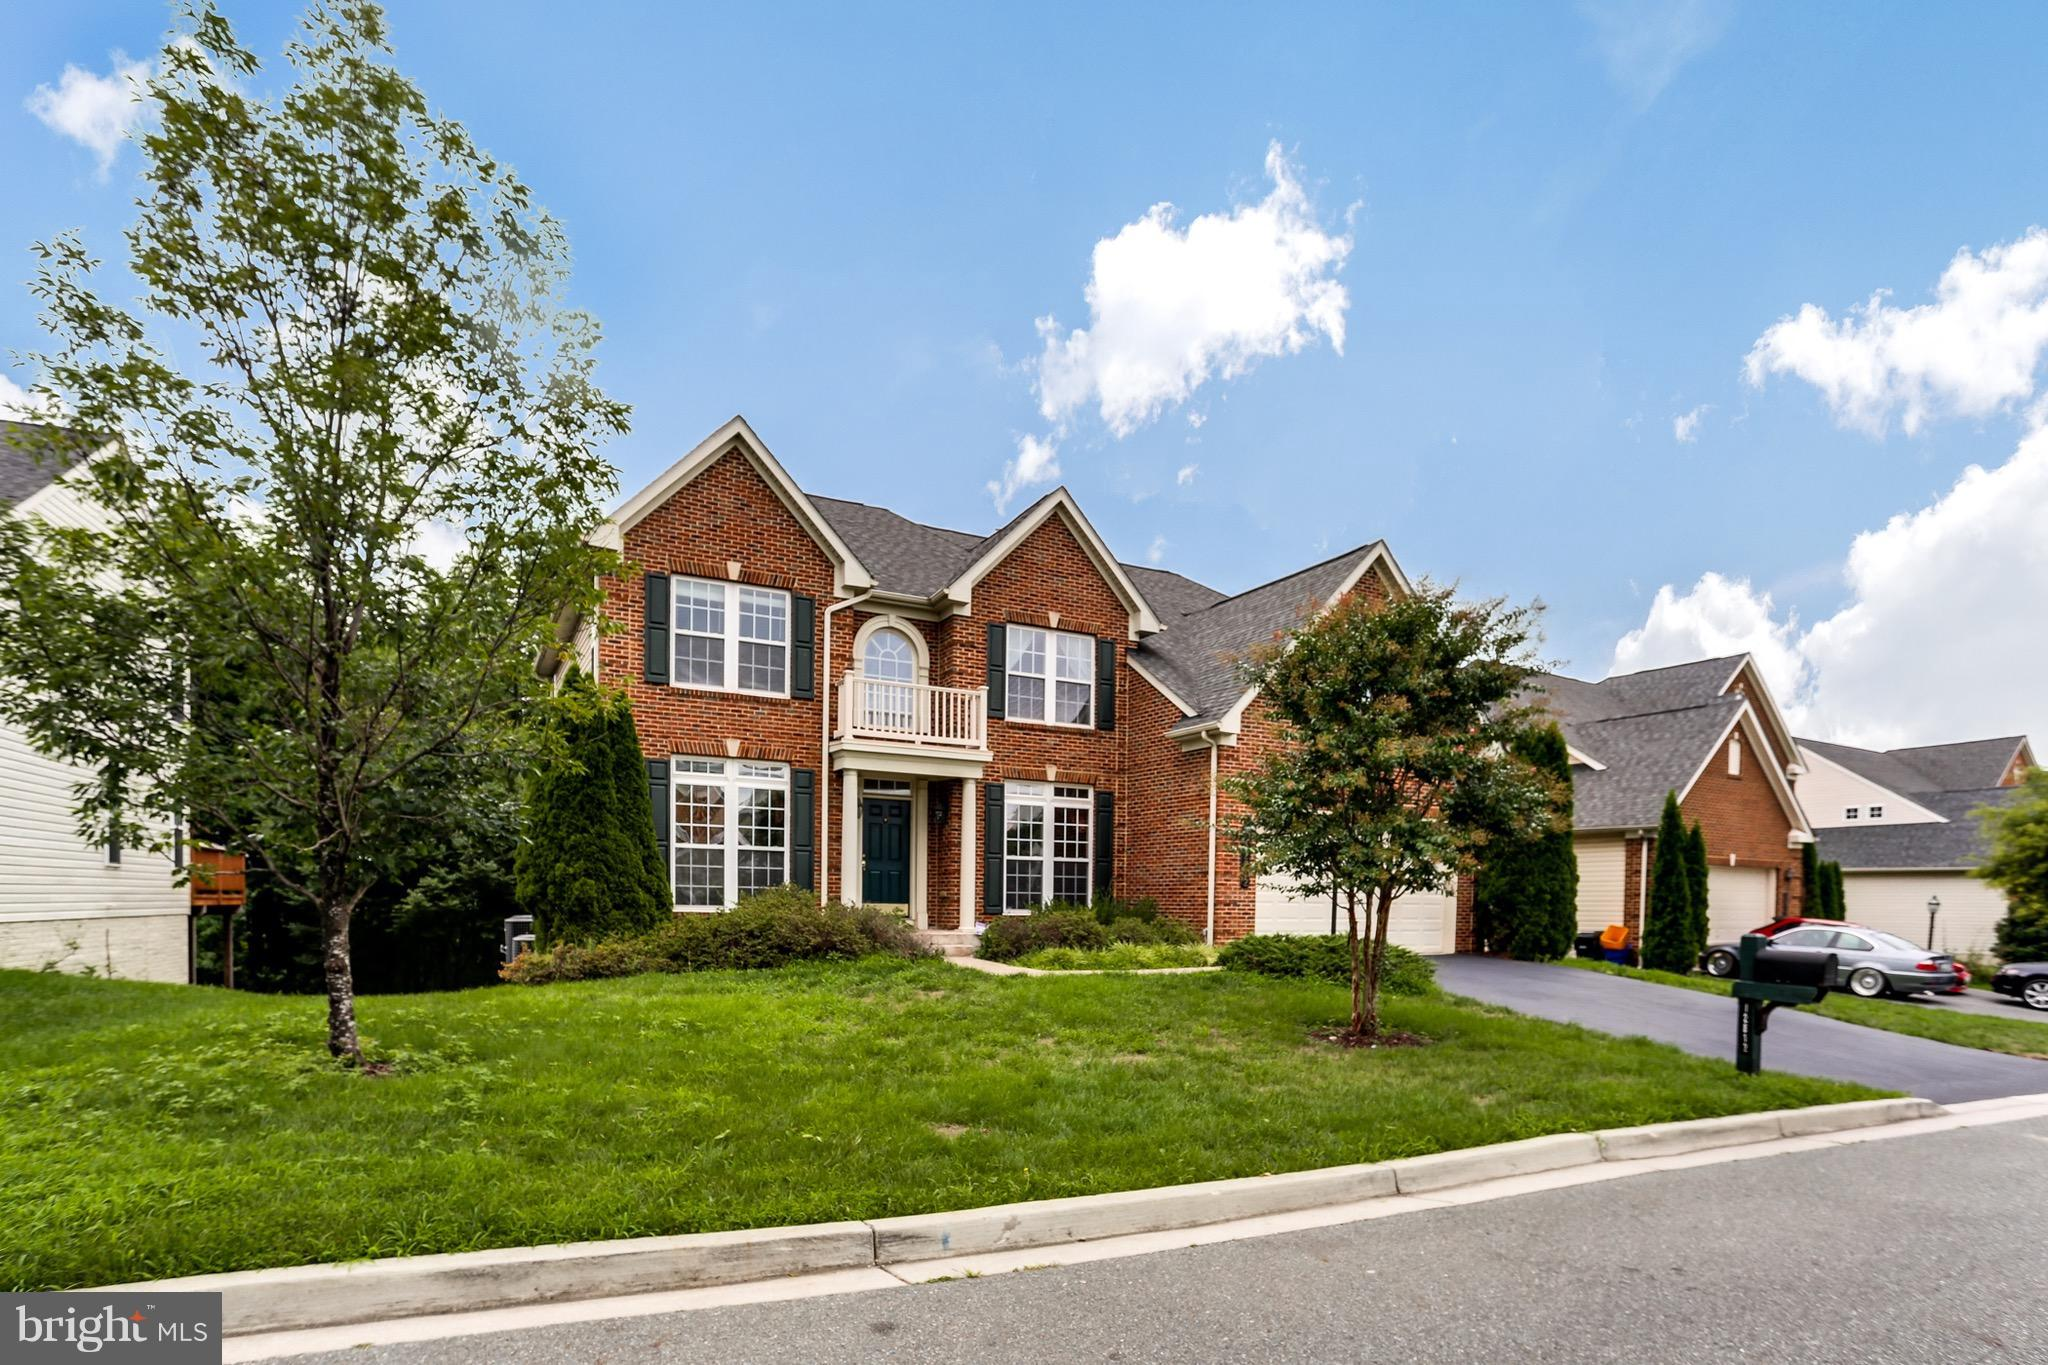 12812 LEDO CREEK TERRACE, BELTSVILLE, MD 20705